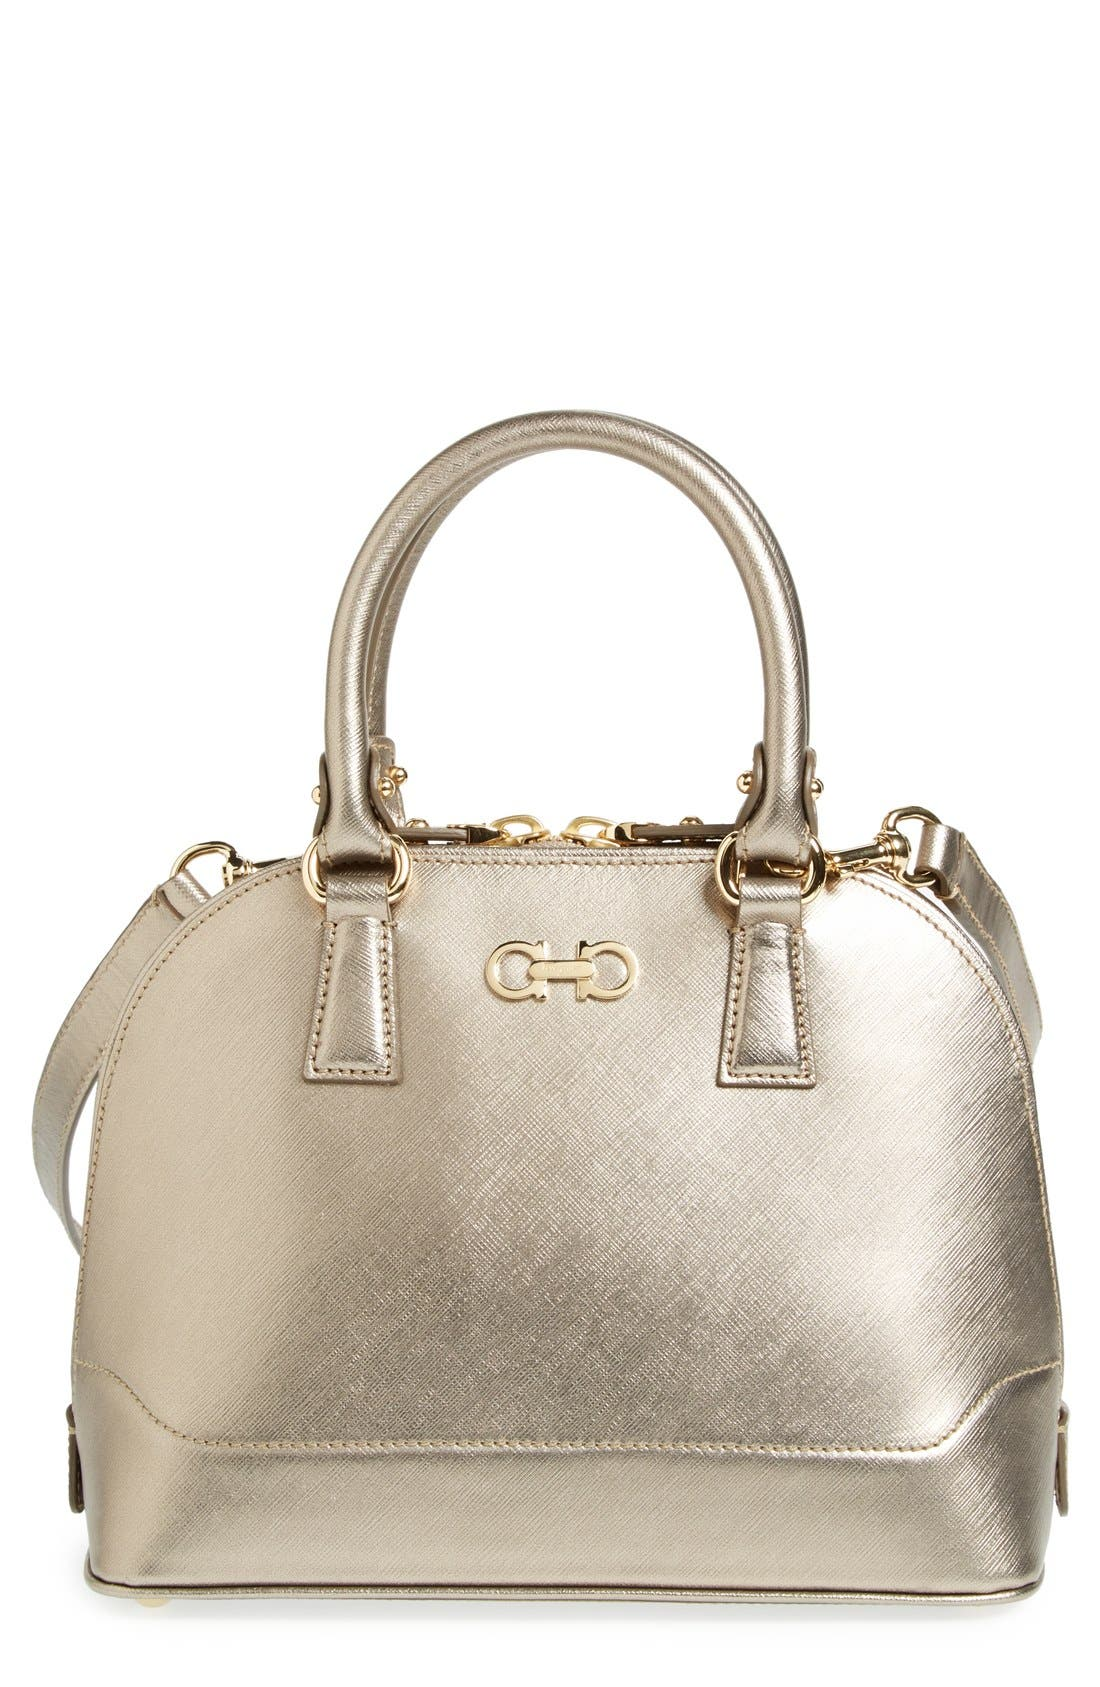 Main Image - Salvatore Ferragamo 'Mini Darina' Dome Satchel